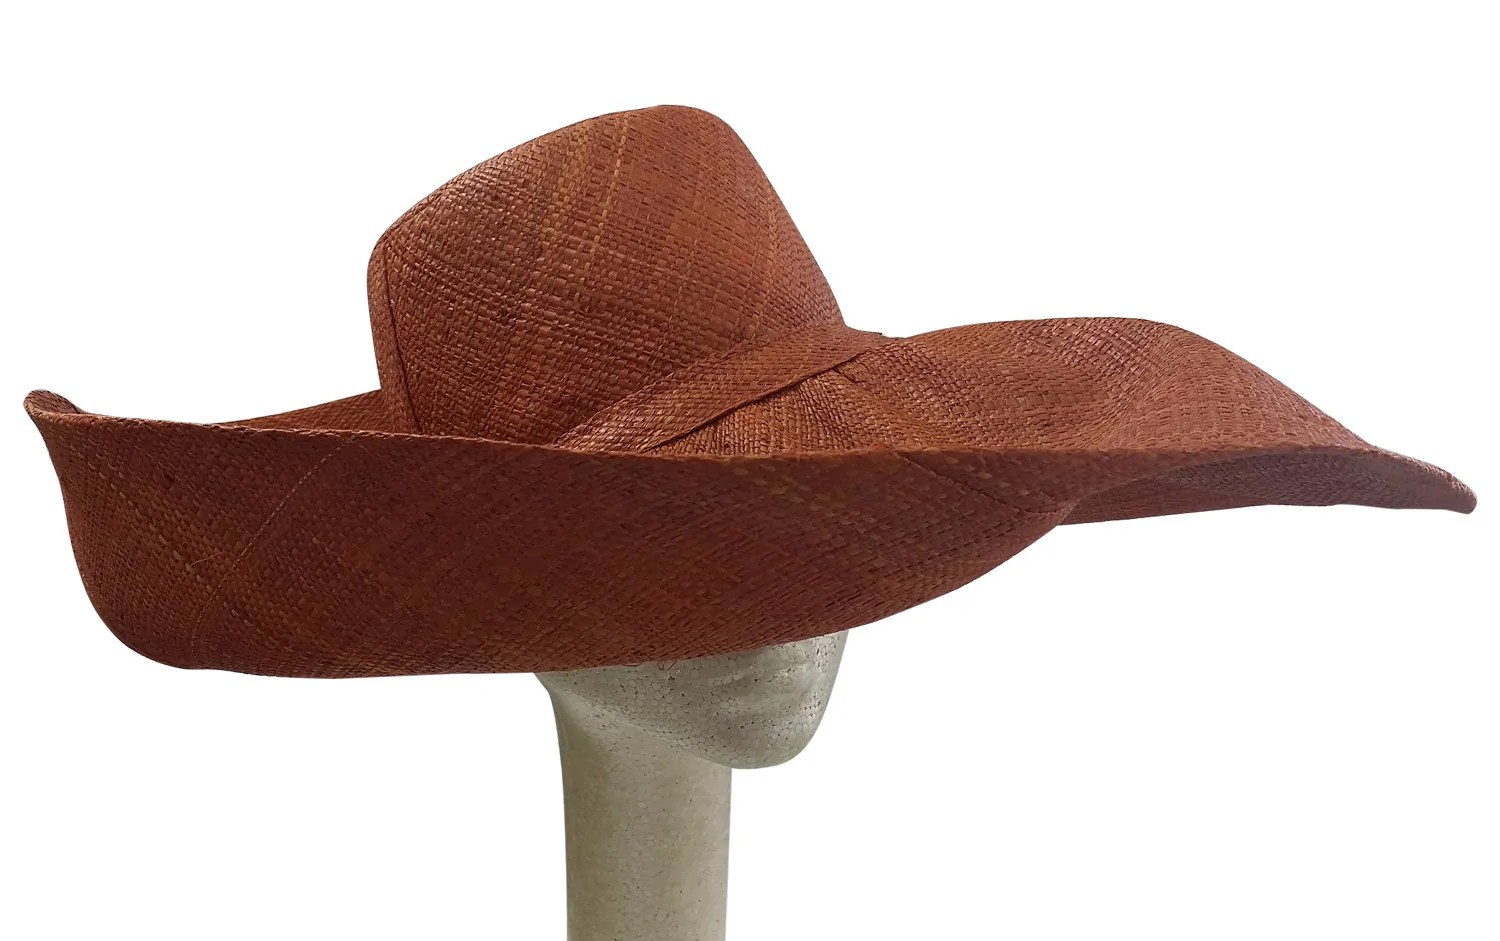 2dbee8ab From Madagascar Raffia Hats - Year of Clean Water